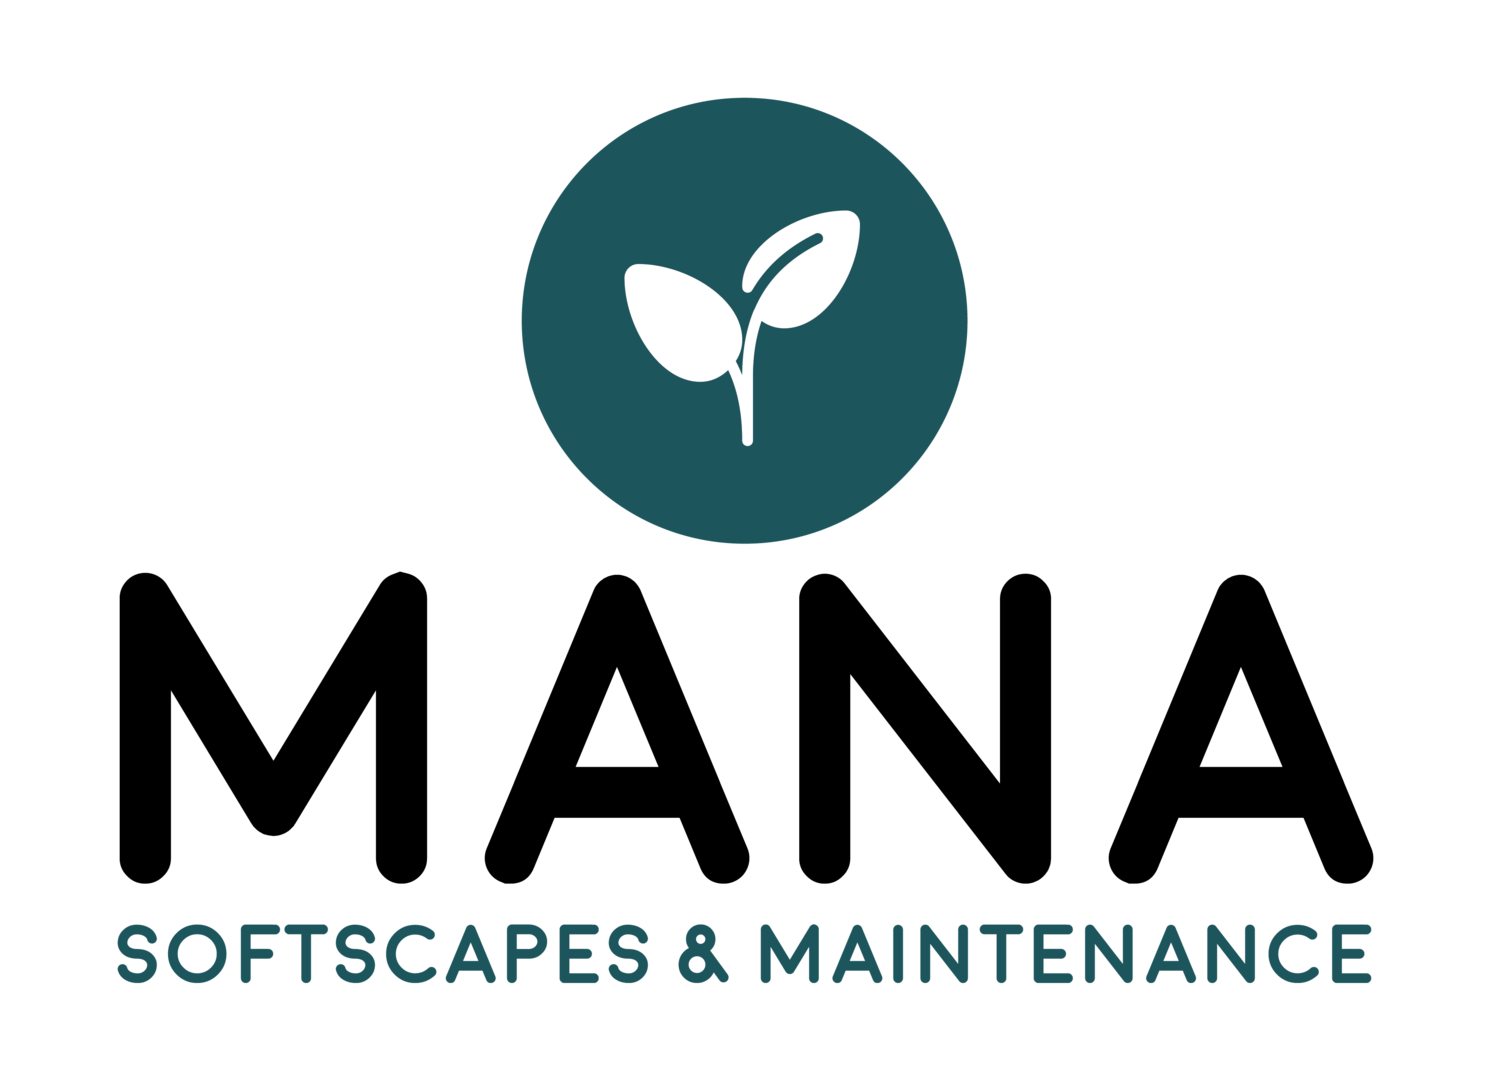 Mana Softscapes & Maintenance | Landscaping, Excavation, Lawns, Gardening & Maintenance